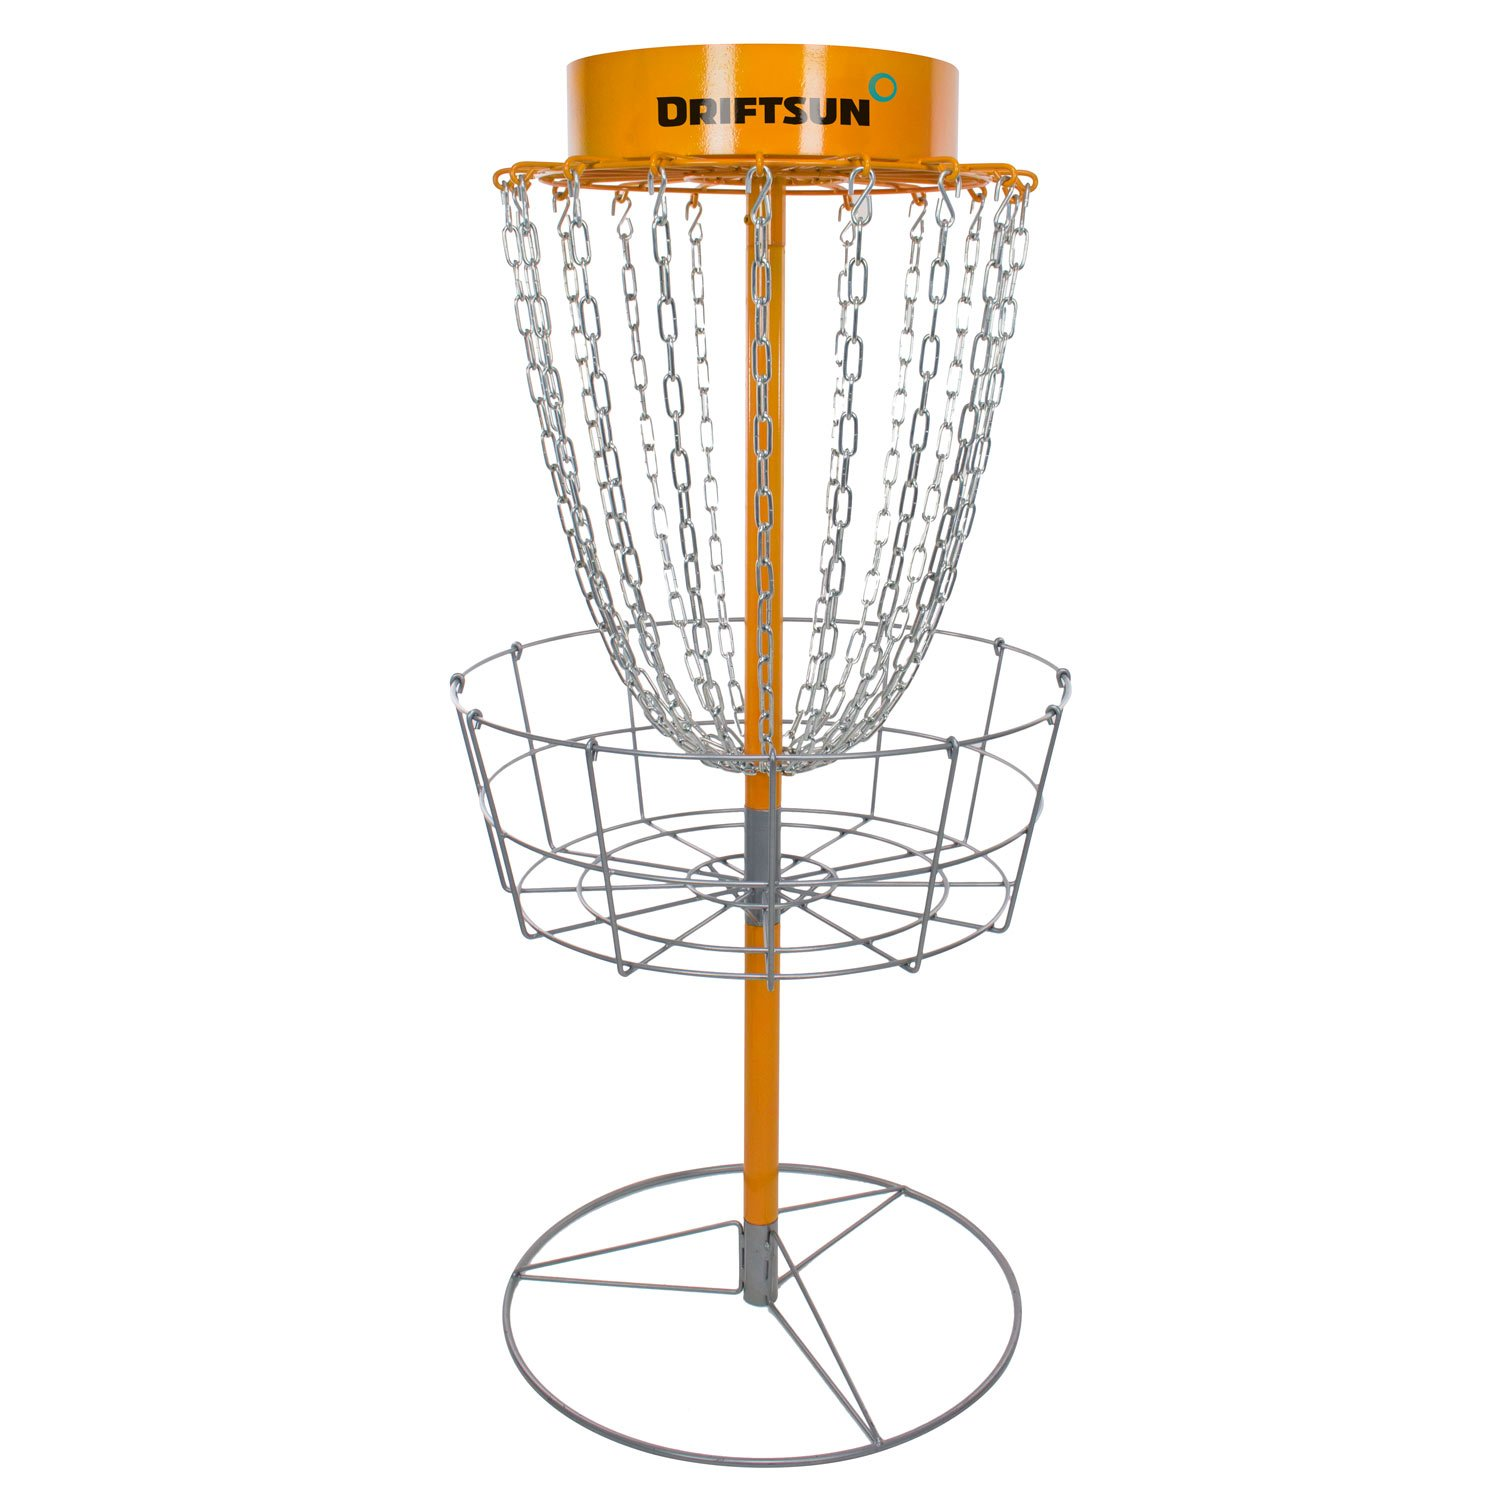 Driftsun Typhoon Portable Disc Golf Basket Goal, Heavy Duty Frisbee Target, Steel by Driftsun